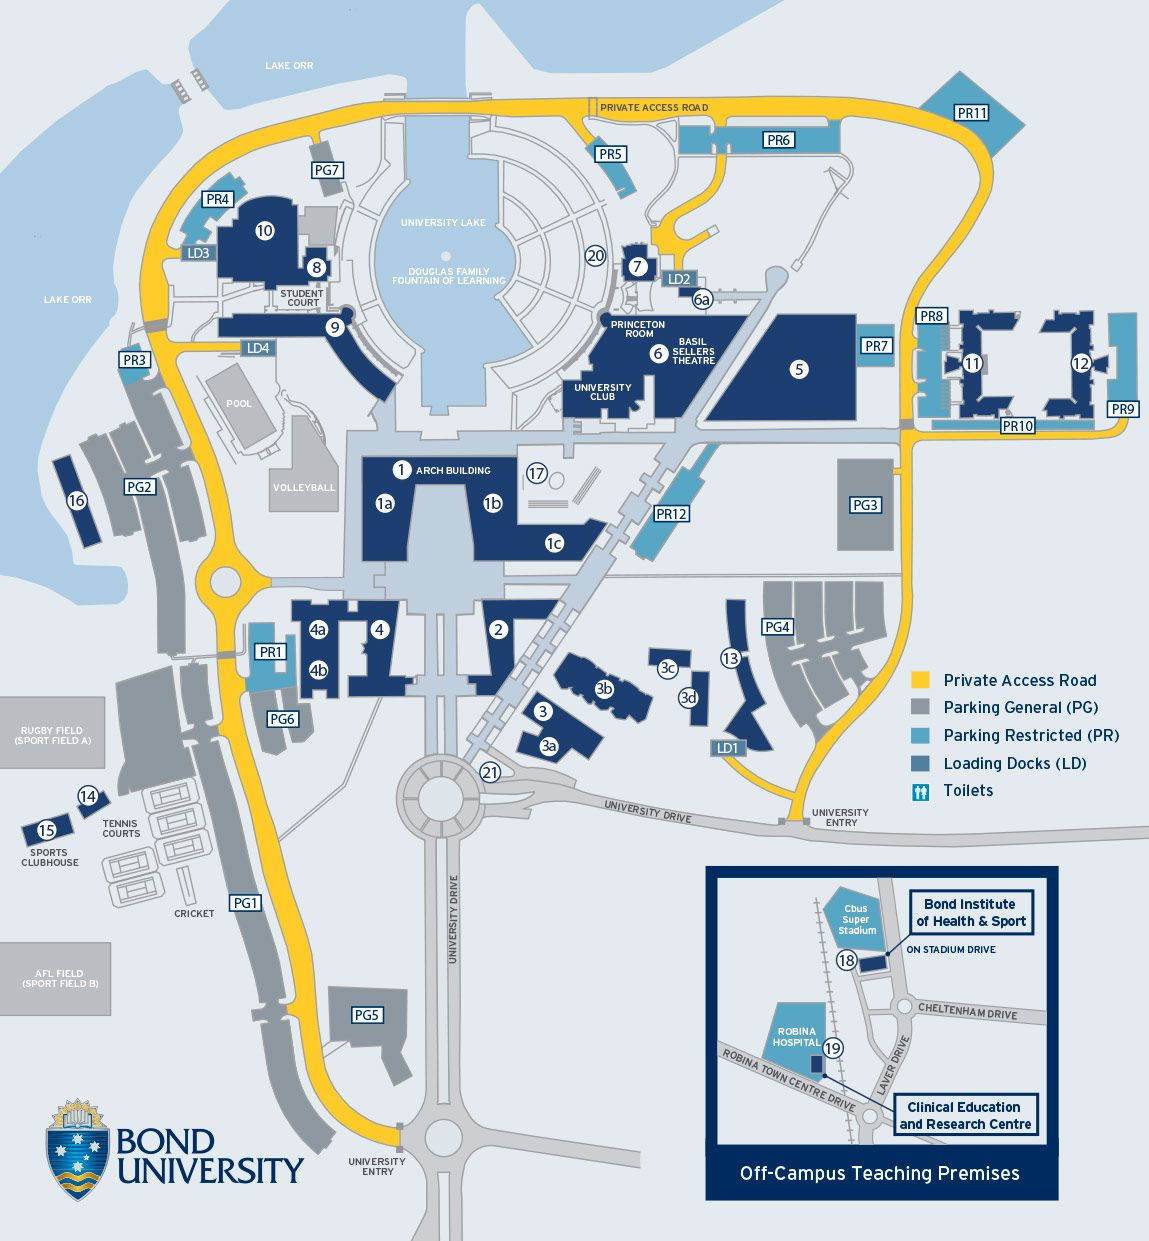 Bond University Map Campus map | Wayfinding map | Campus map, Map signage, Urban